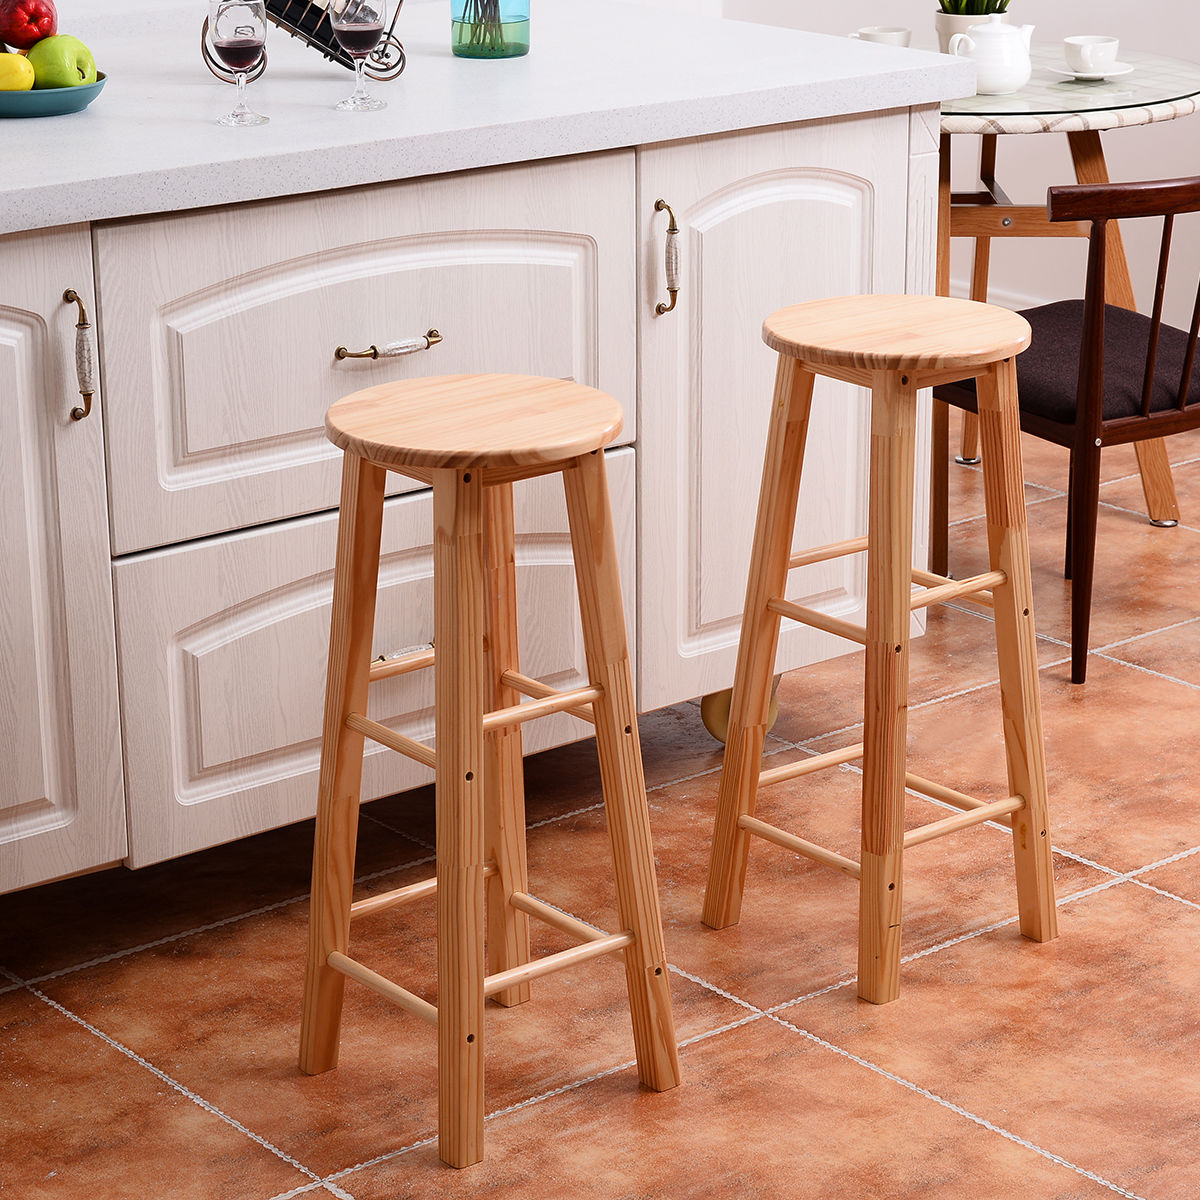 Costway Set of 2 Round 29'' Bar Stools Wood Bistro Dining Kitchen Pub Chair Furniture